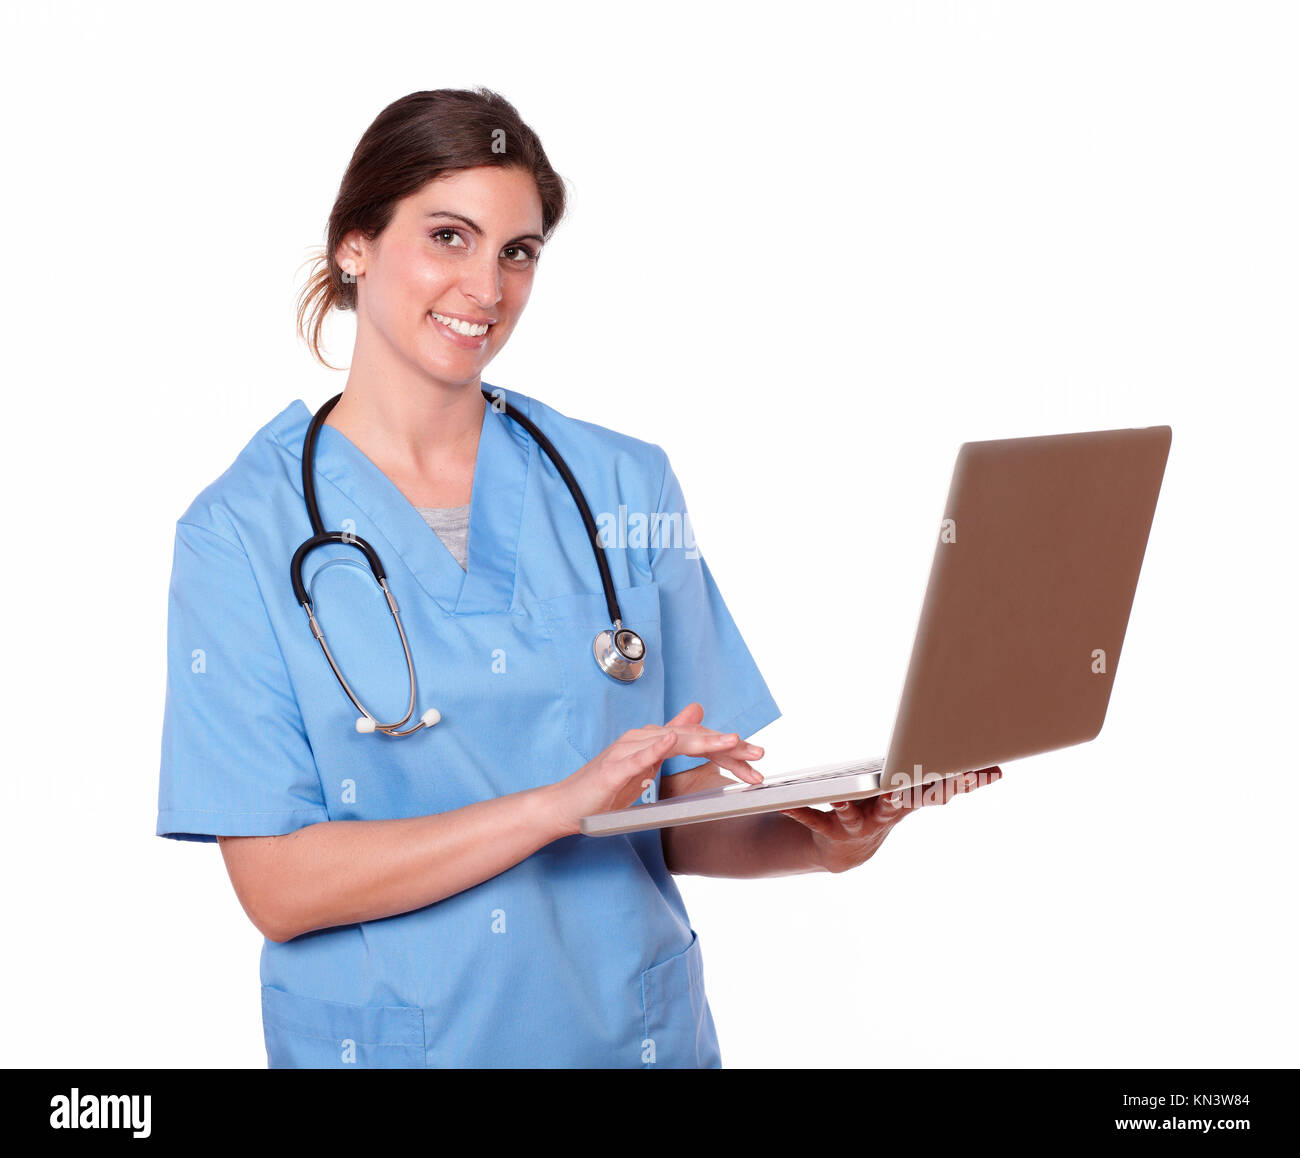 Portrait of a pretty nurse smiling at you, while using her laptop, against white background. Stock Photo